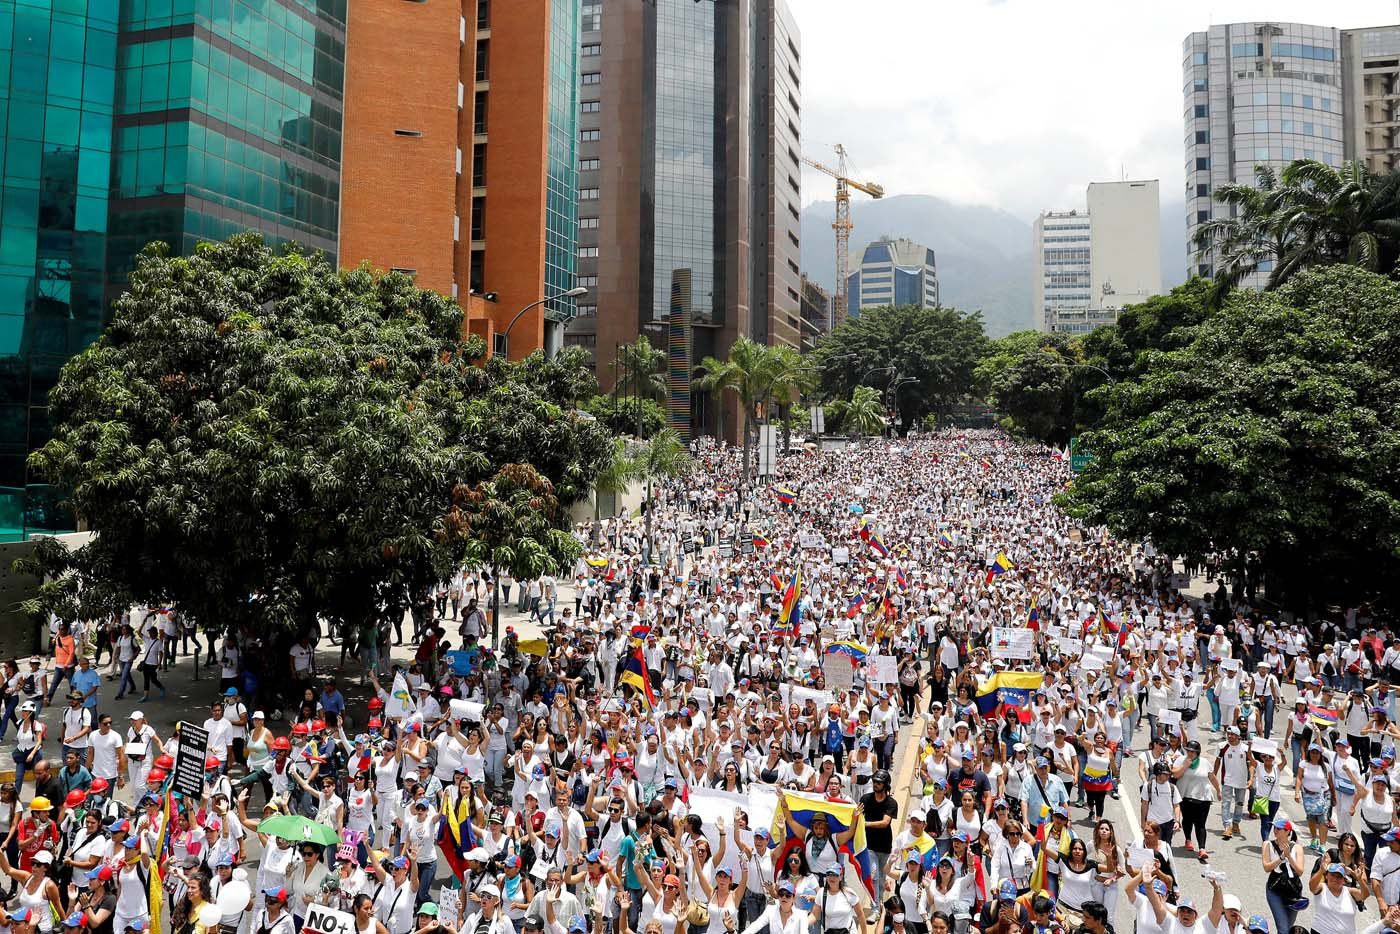 Demonstrators attend a women's march to protest against President Nicolas Maduro's government in Caracas, Venezuela, May 6, 2017. REUTERS/Carlos Garcia Rawlins